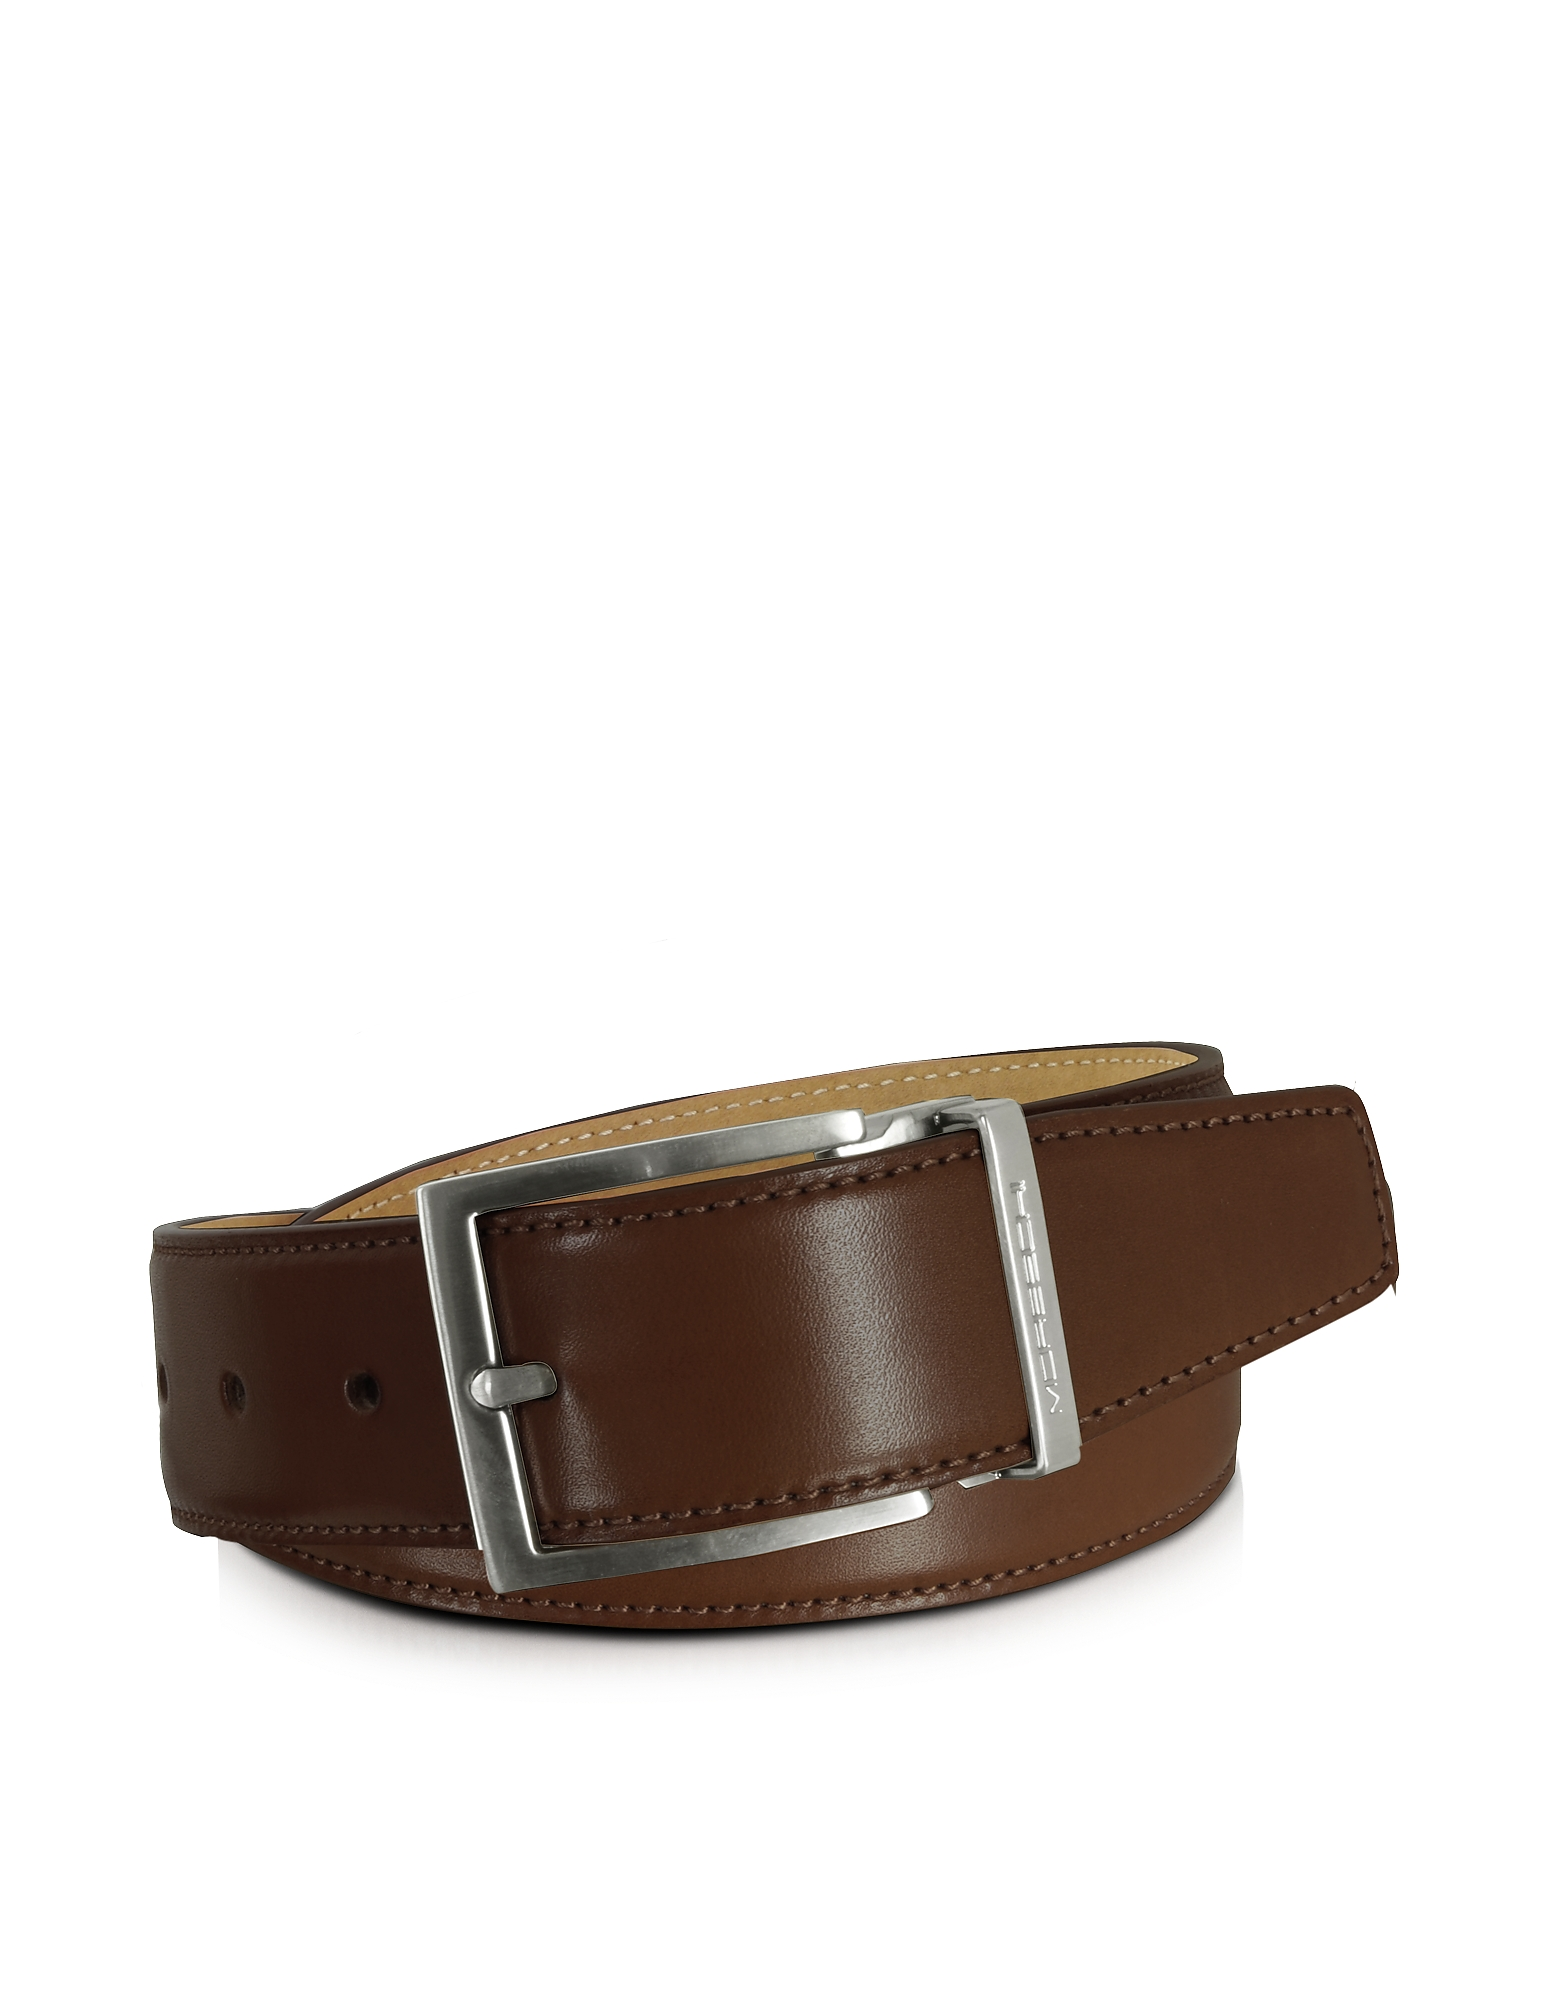 Moreschi Men's Belts, Eton Brown Leather Belt